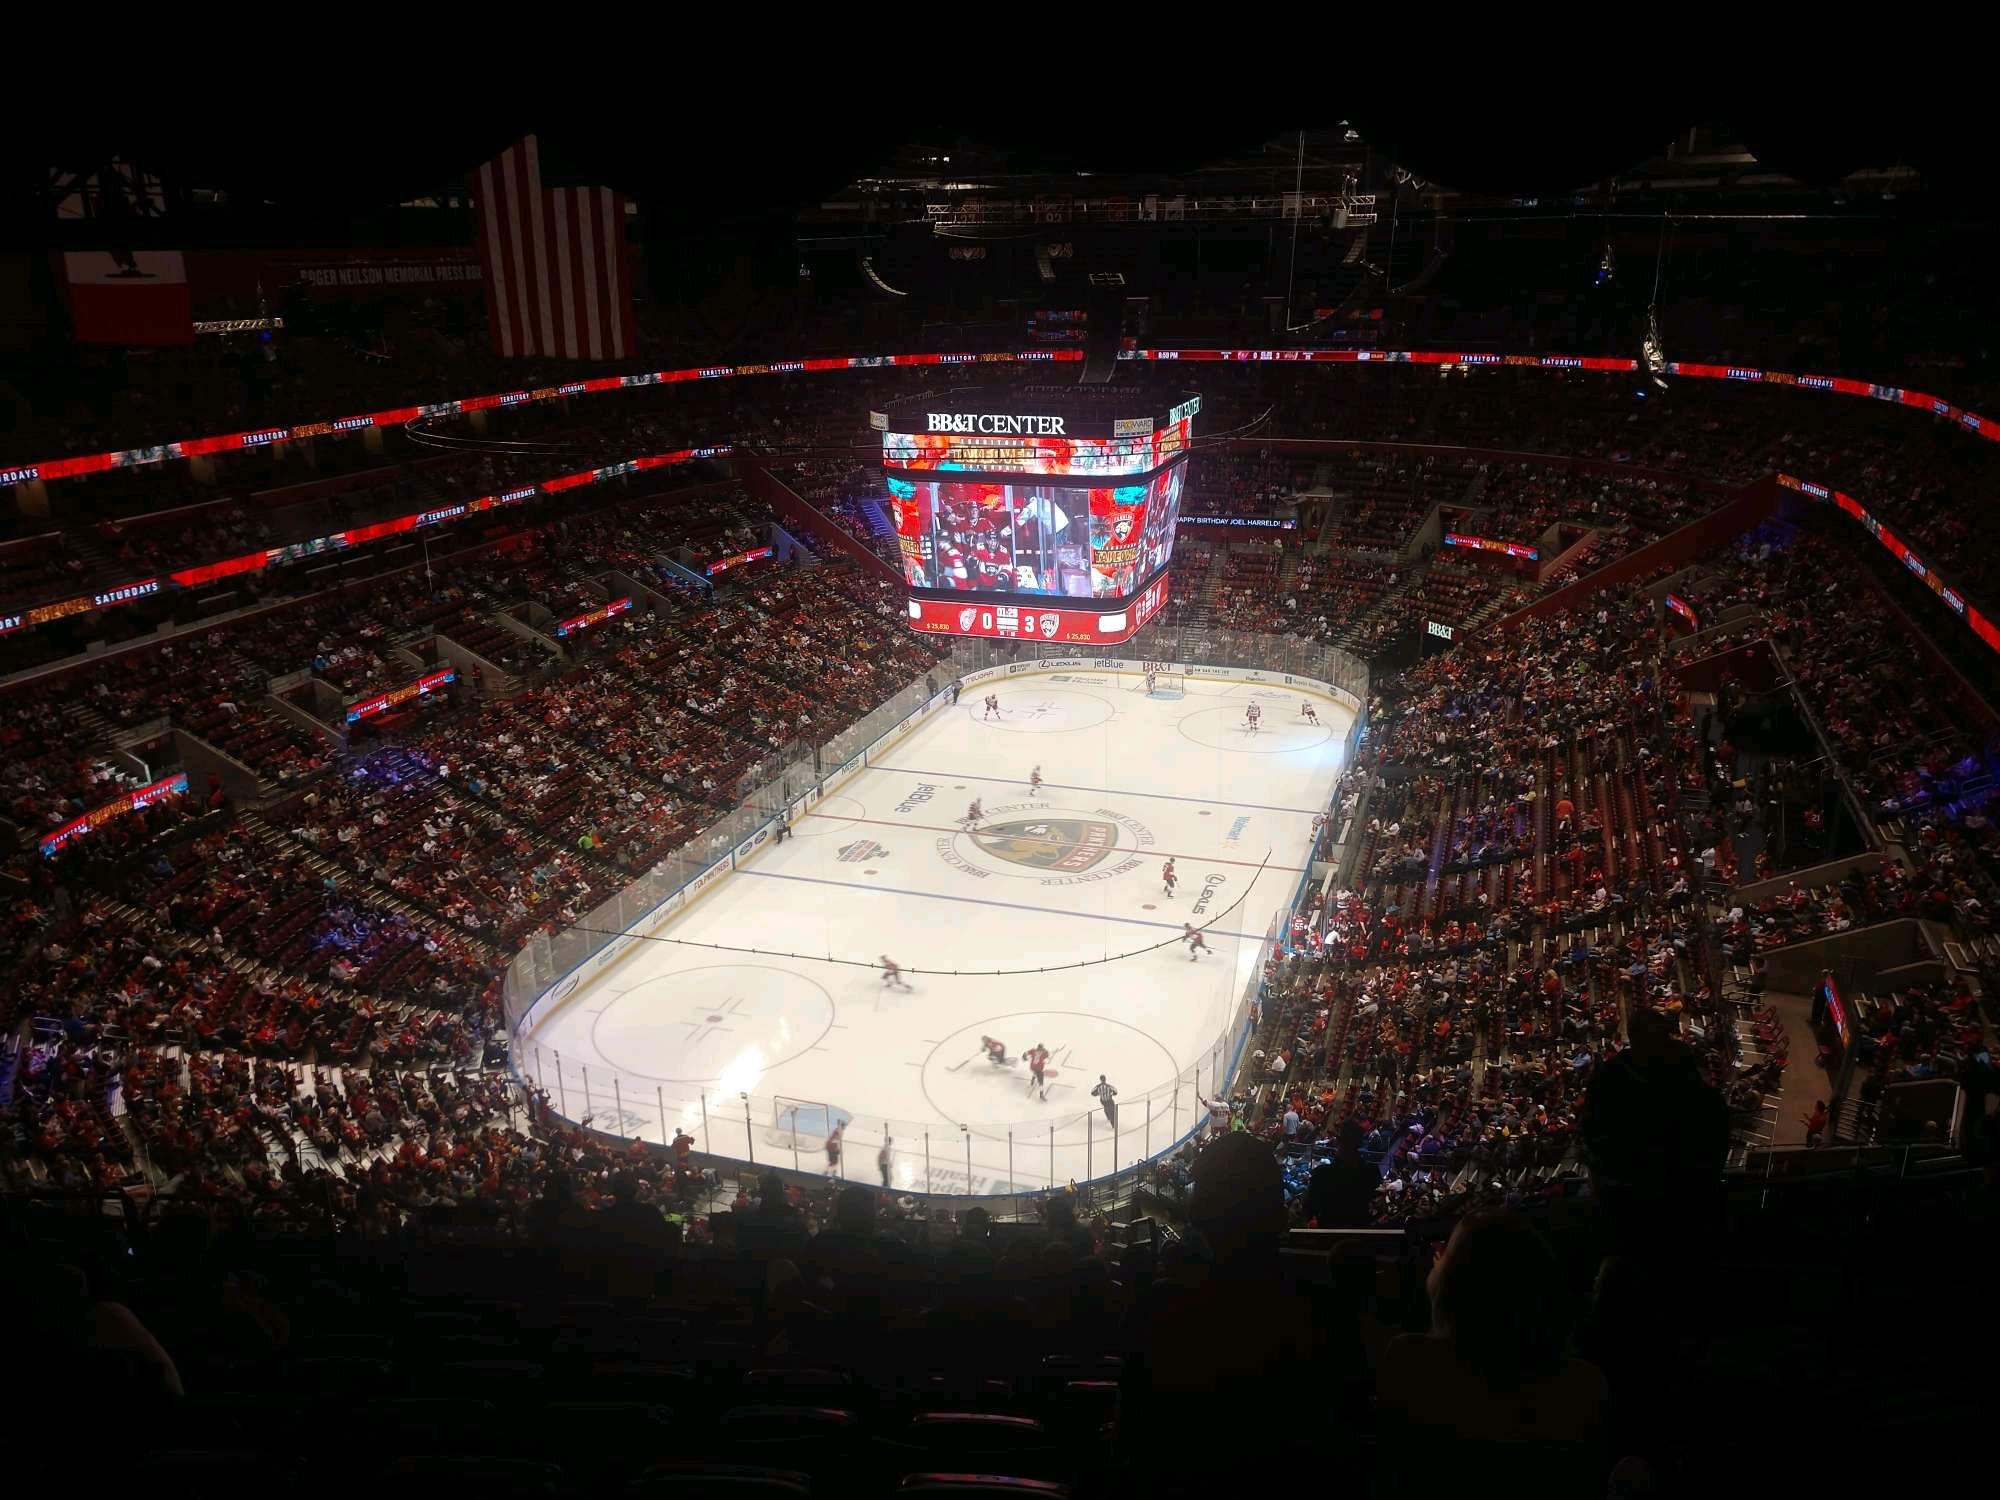 BB&T Center Section 308 Row 14 Seat 5